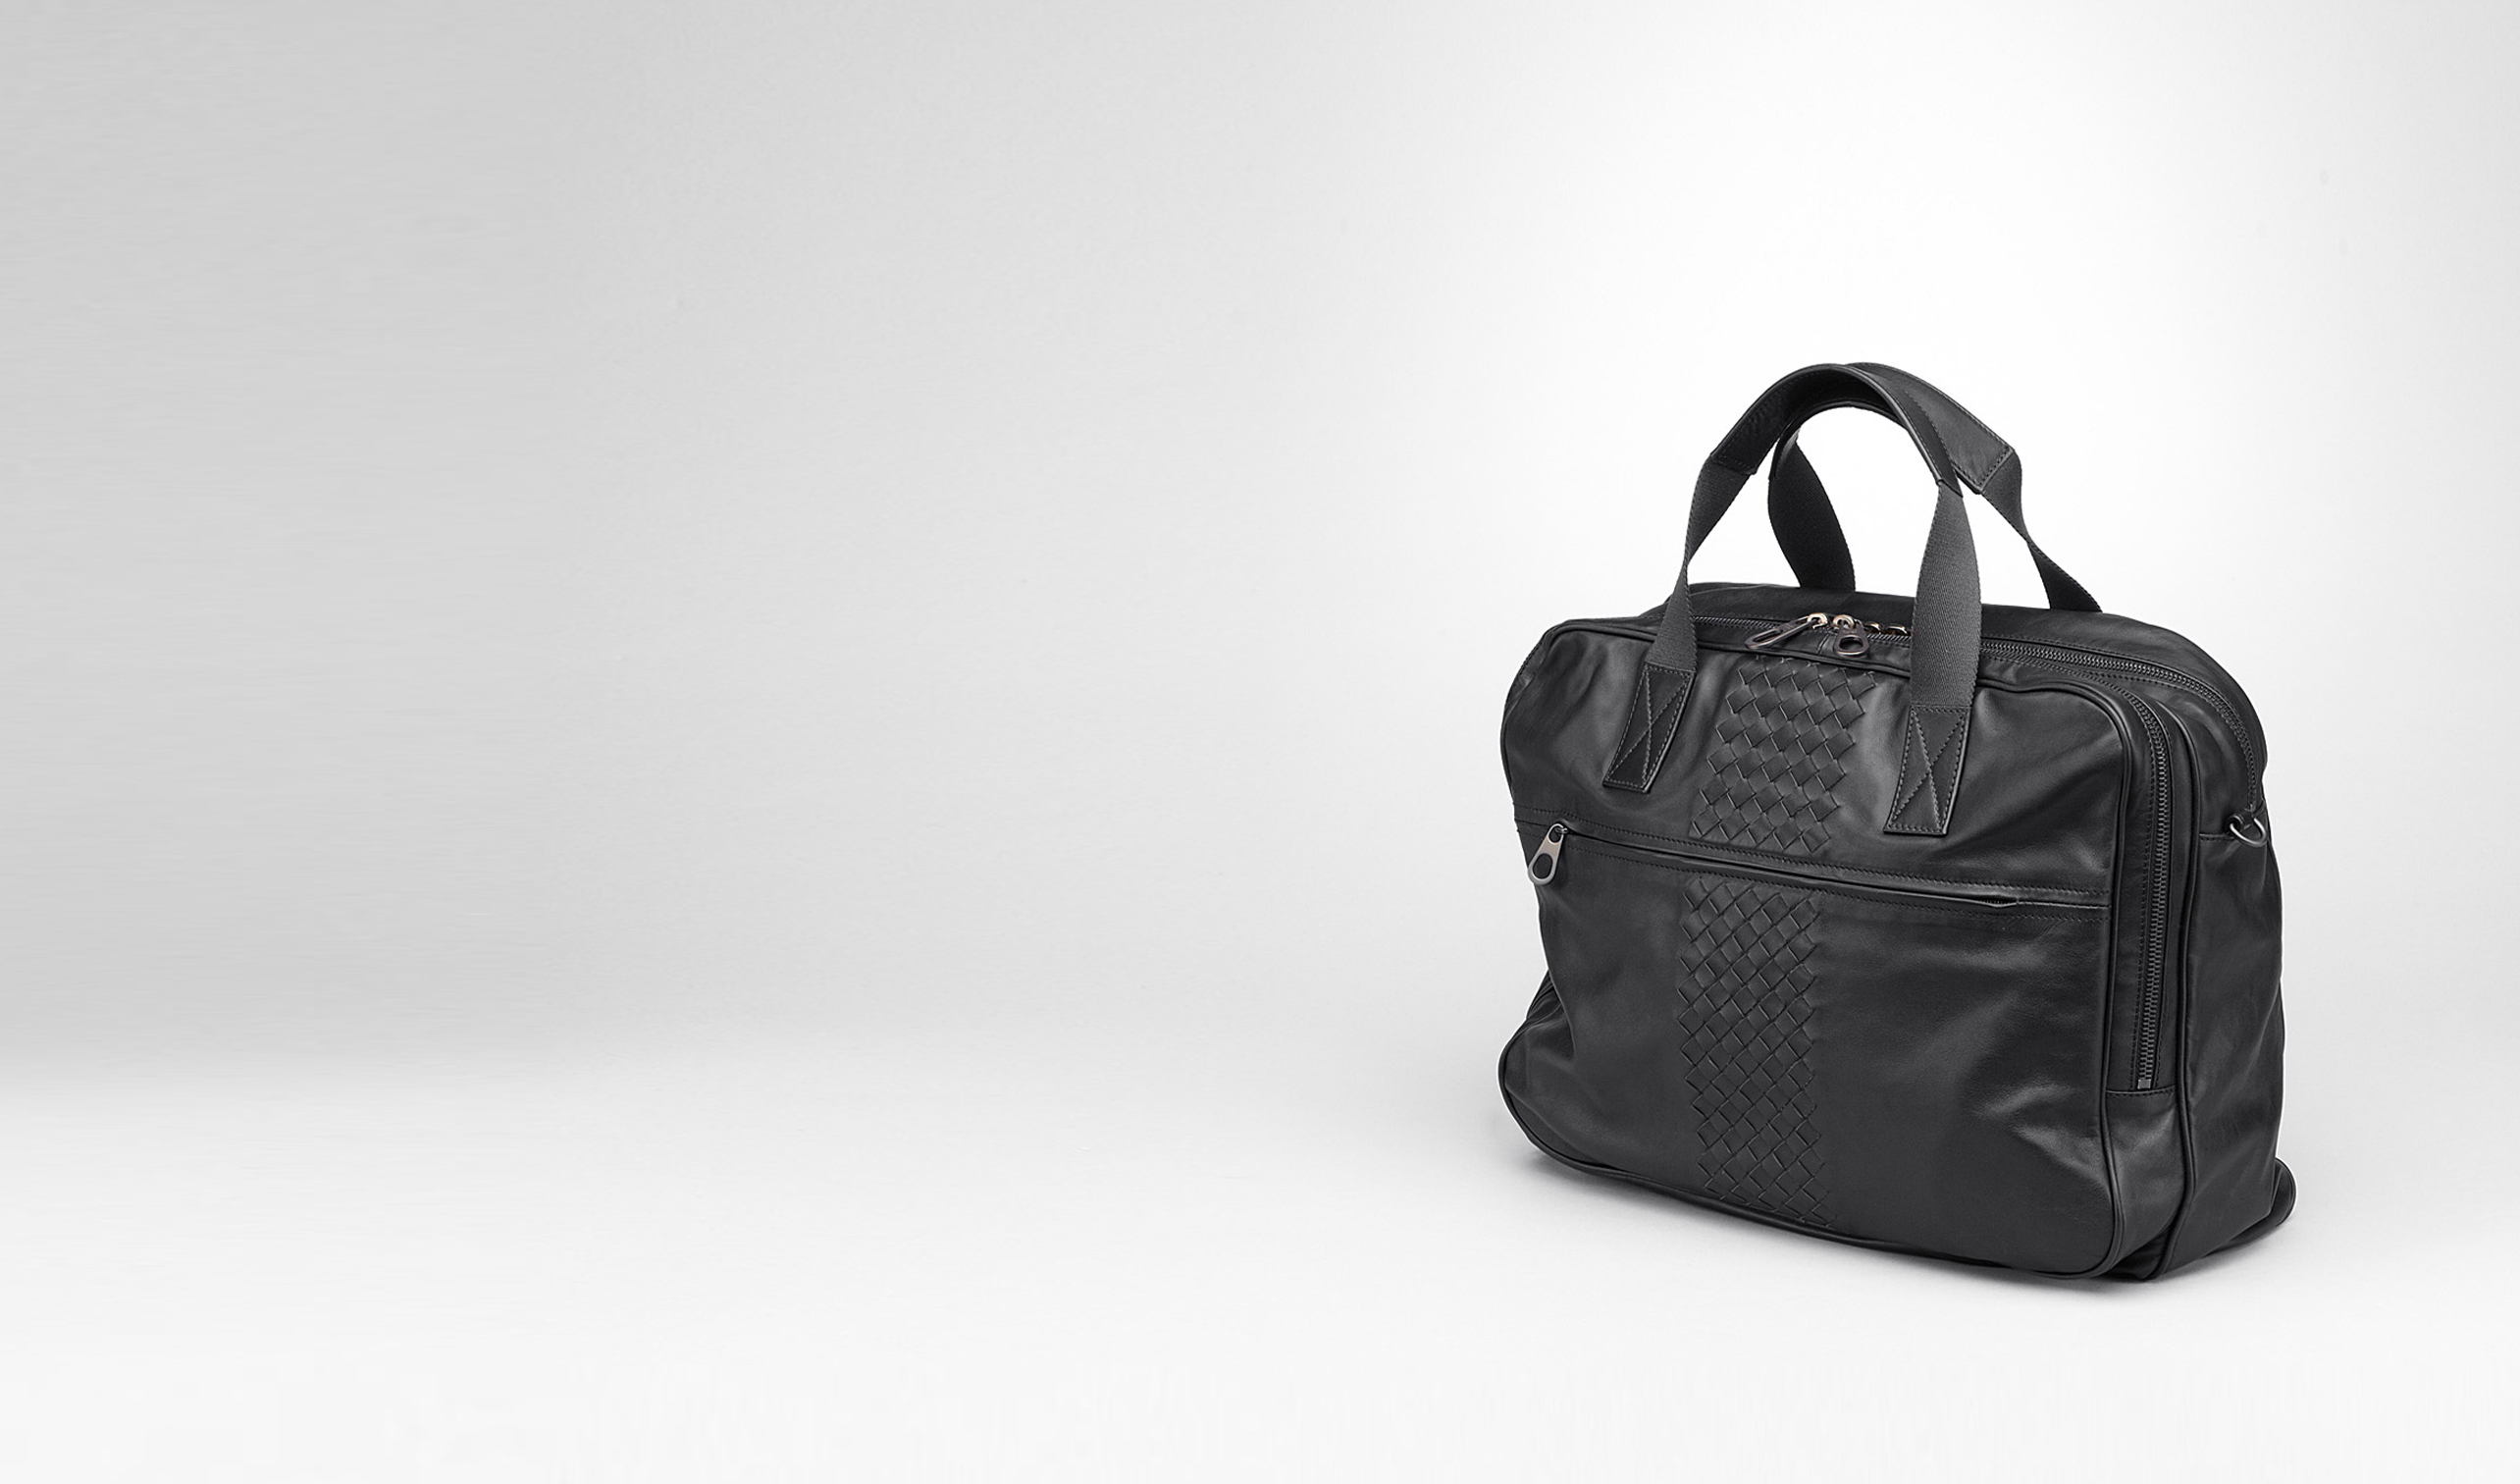 BOTTEGA VENETA Borsa Shopping U Informale Tote Nera in Light Calf pl